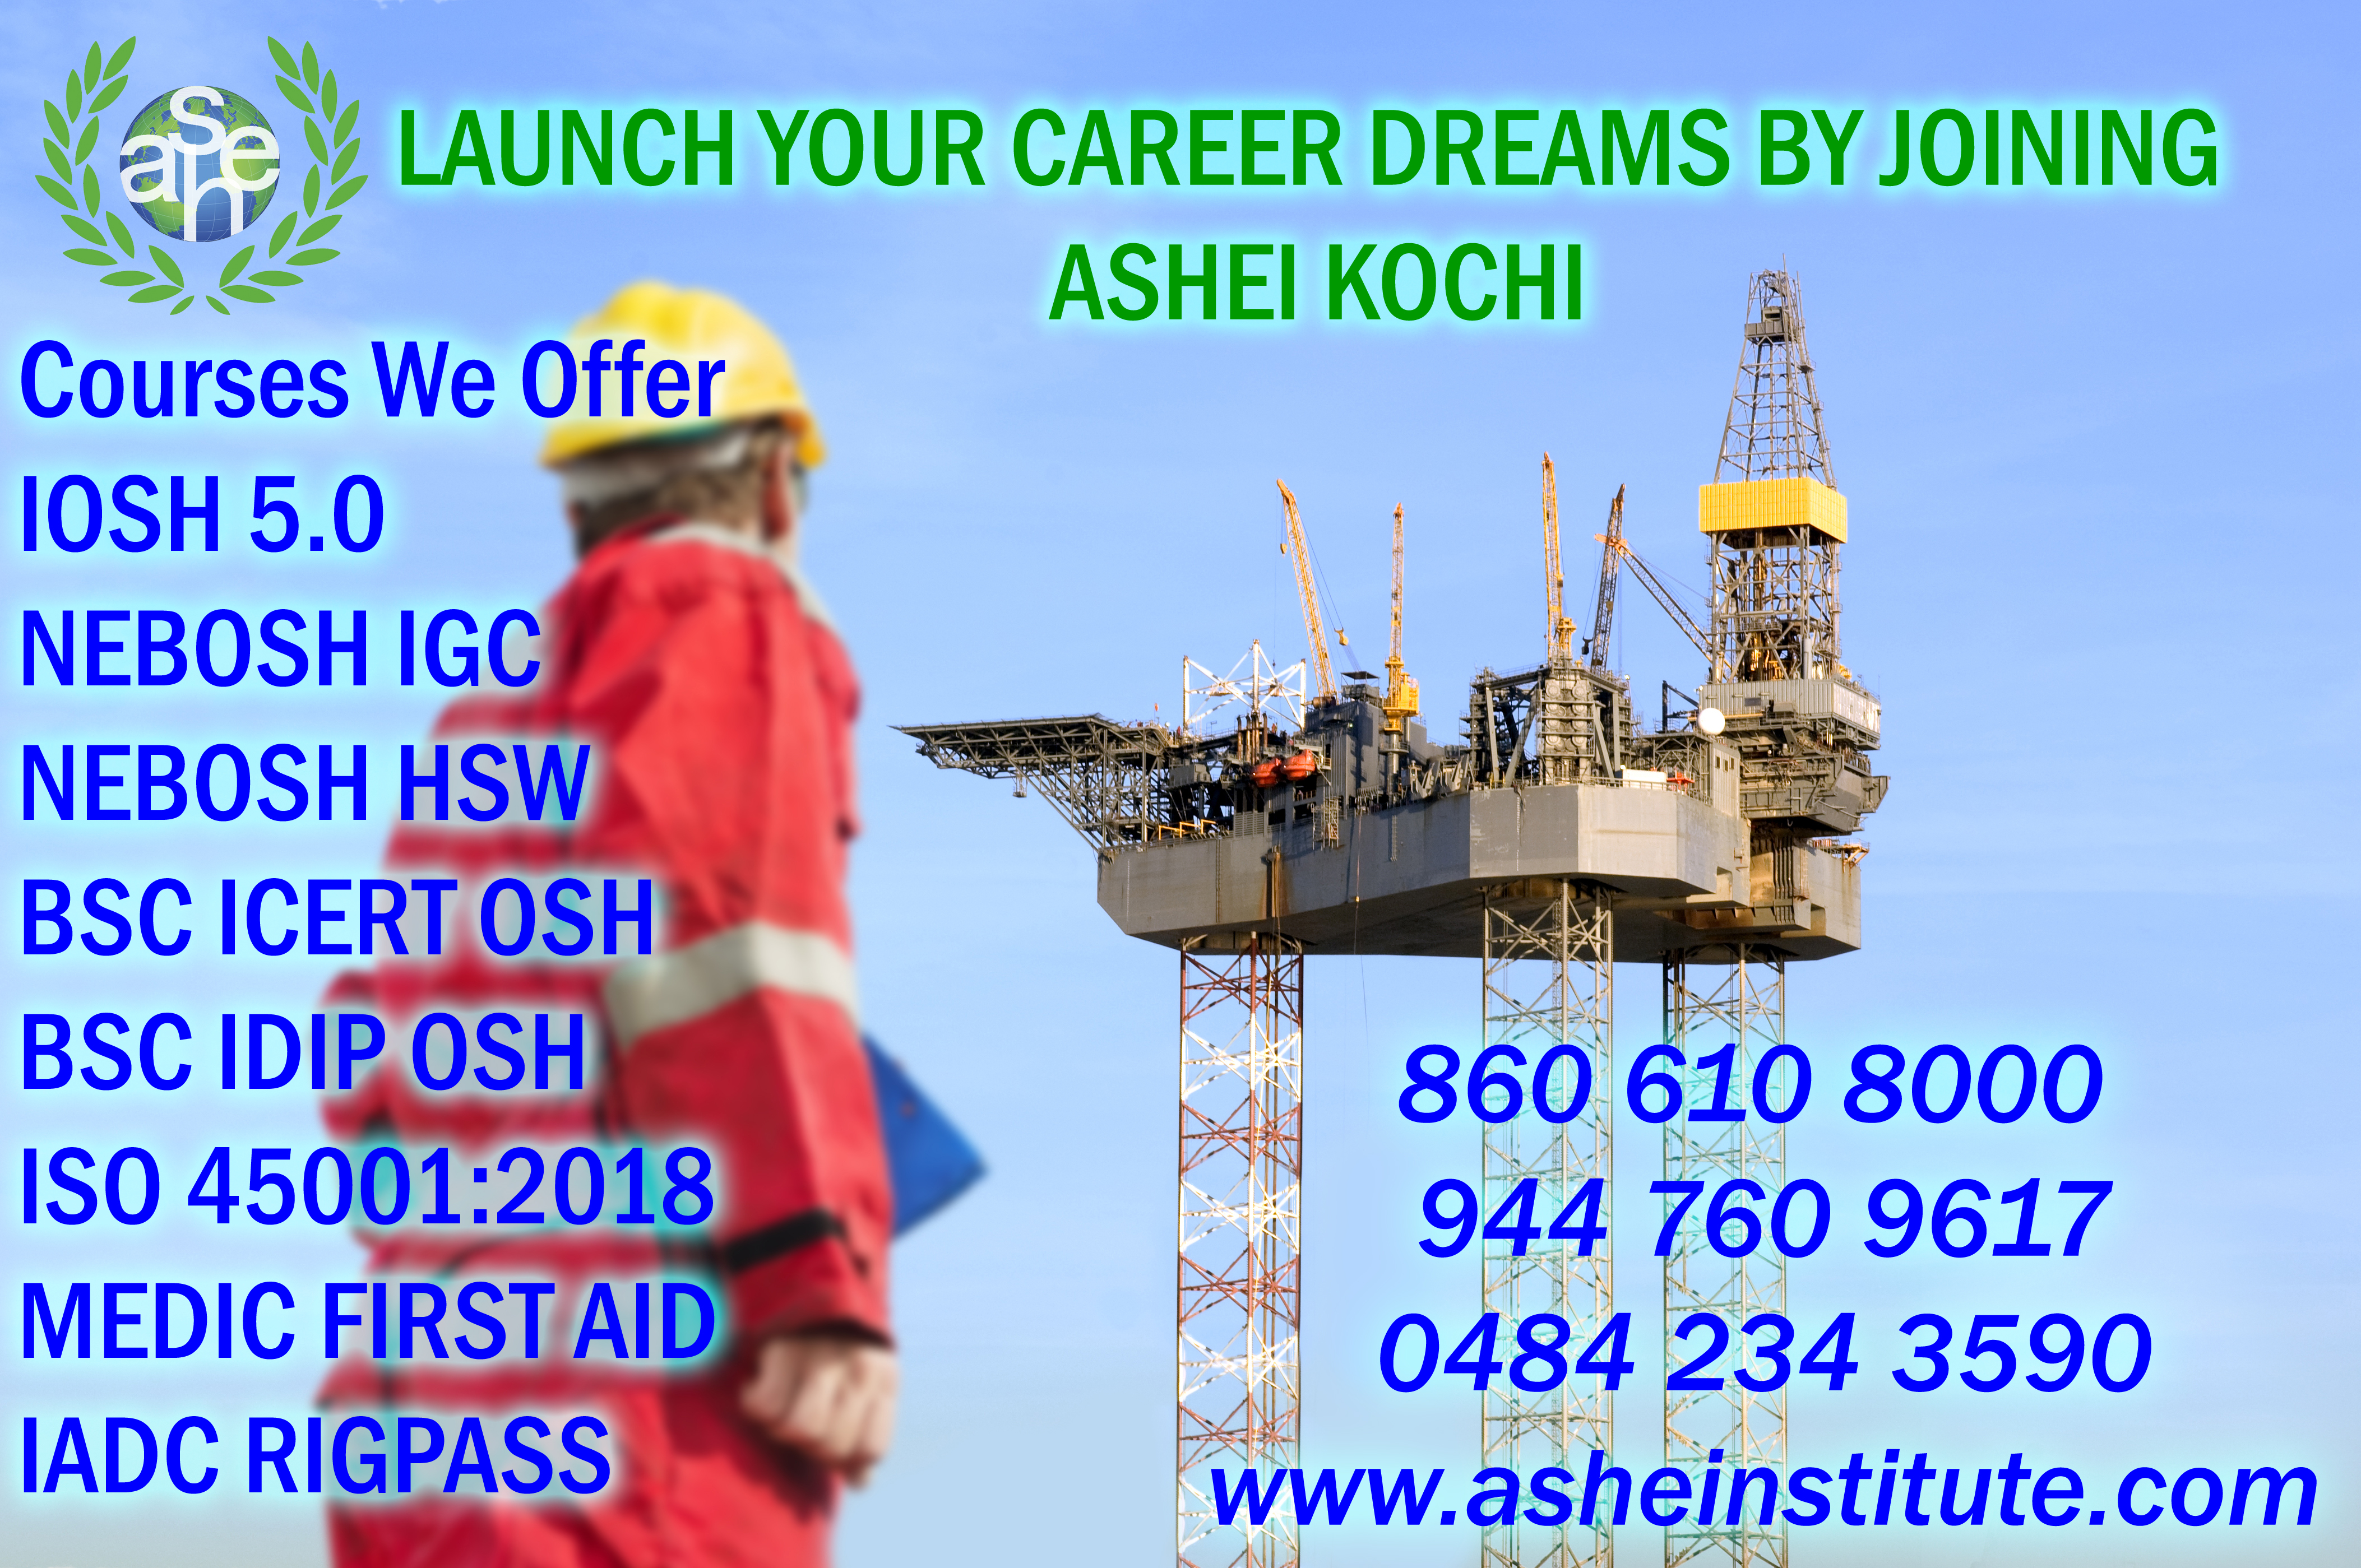 nebosh igc course Safety training in Kochi 8606108000